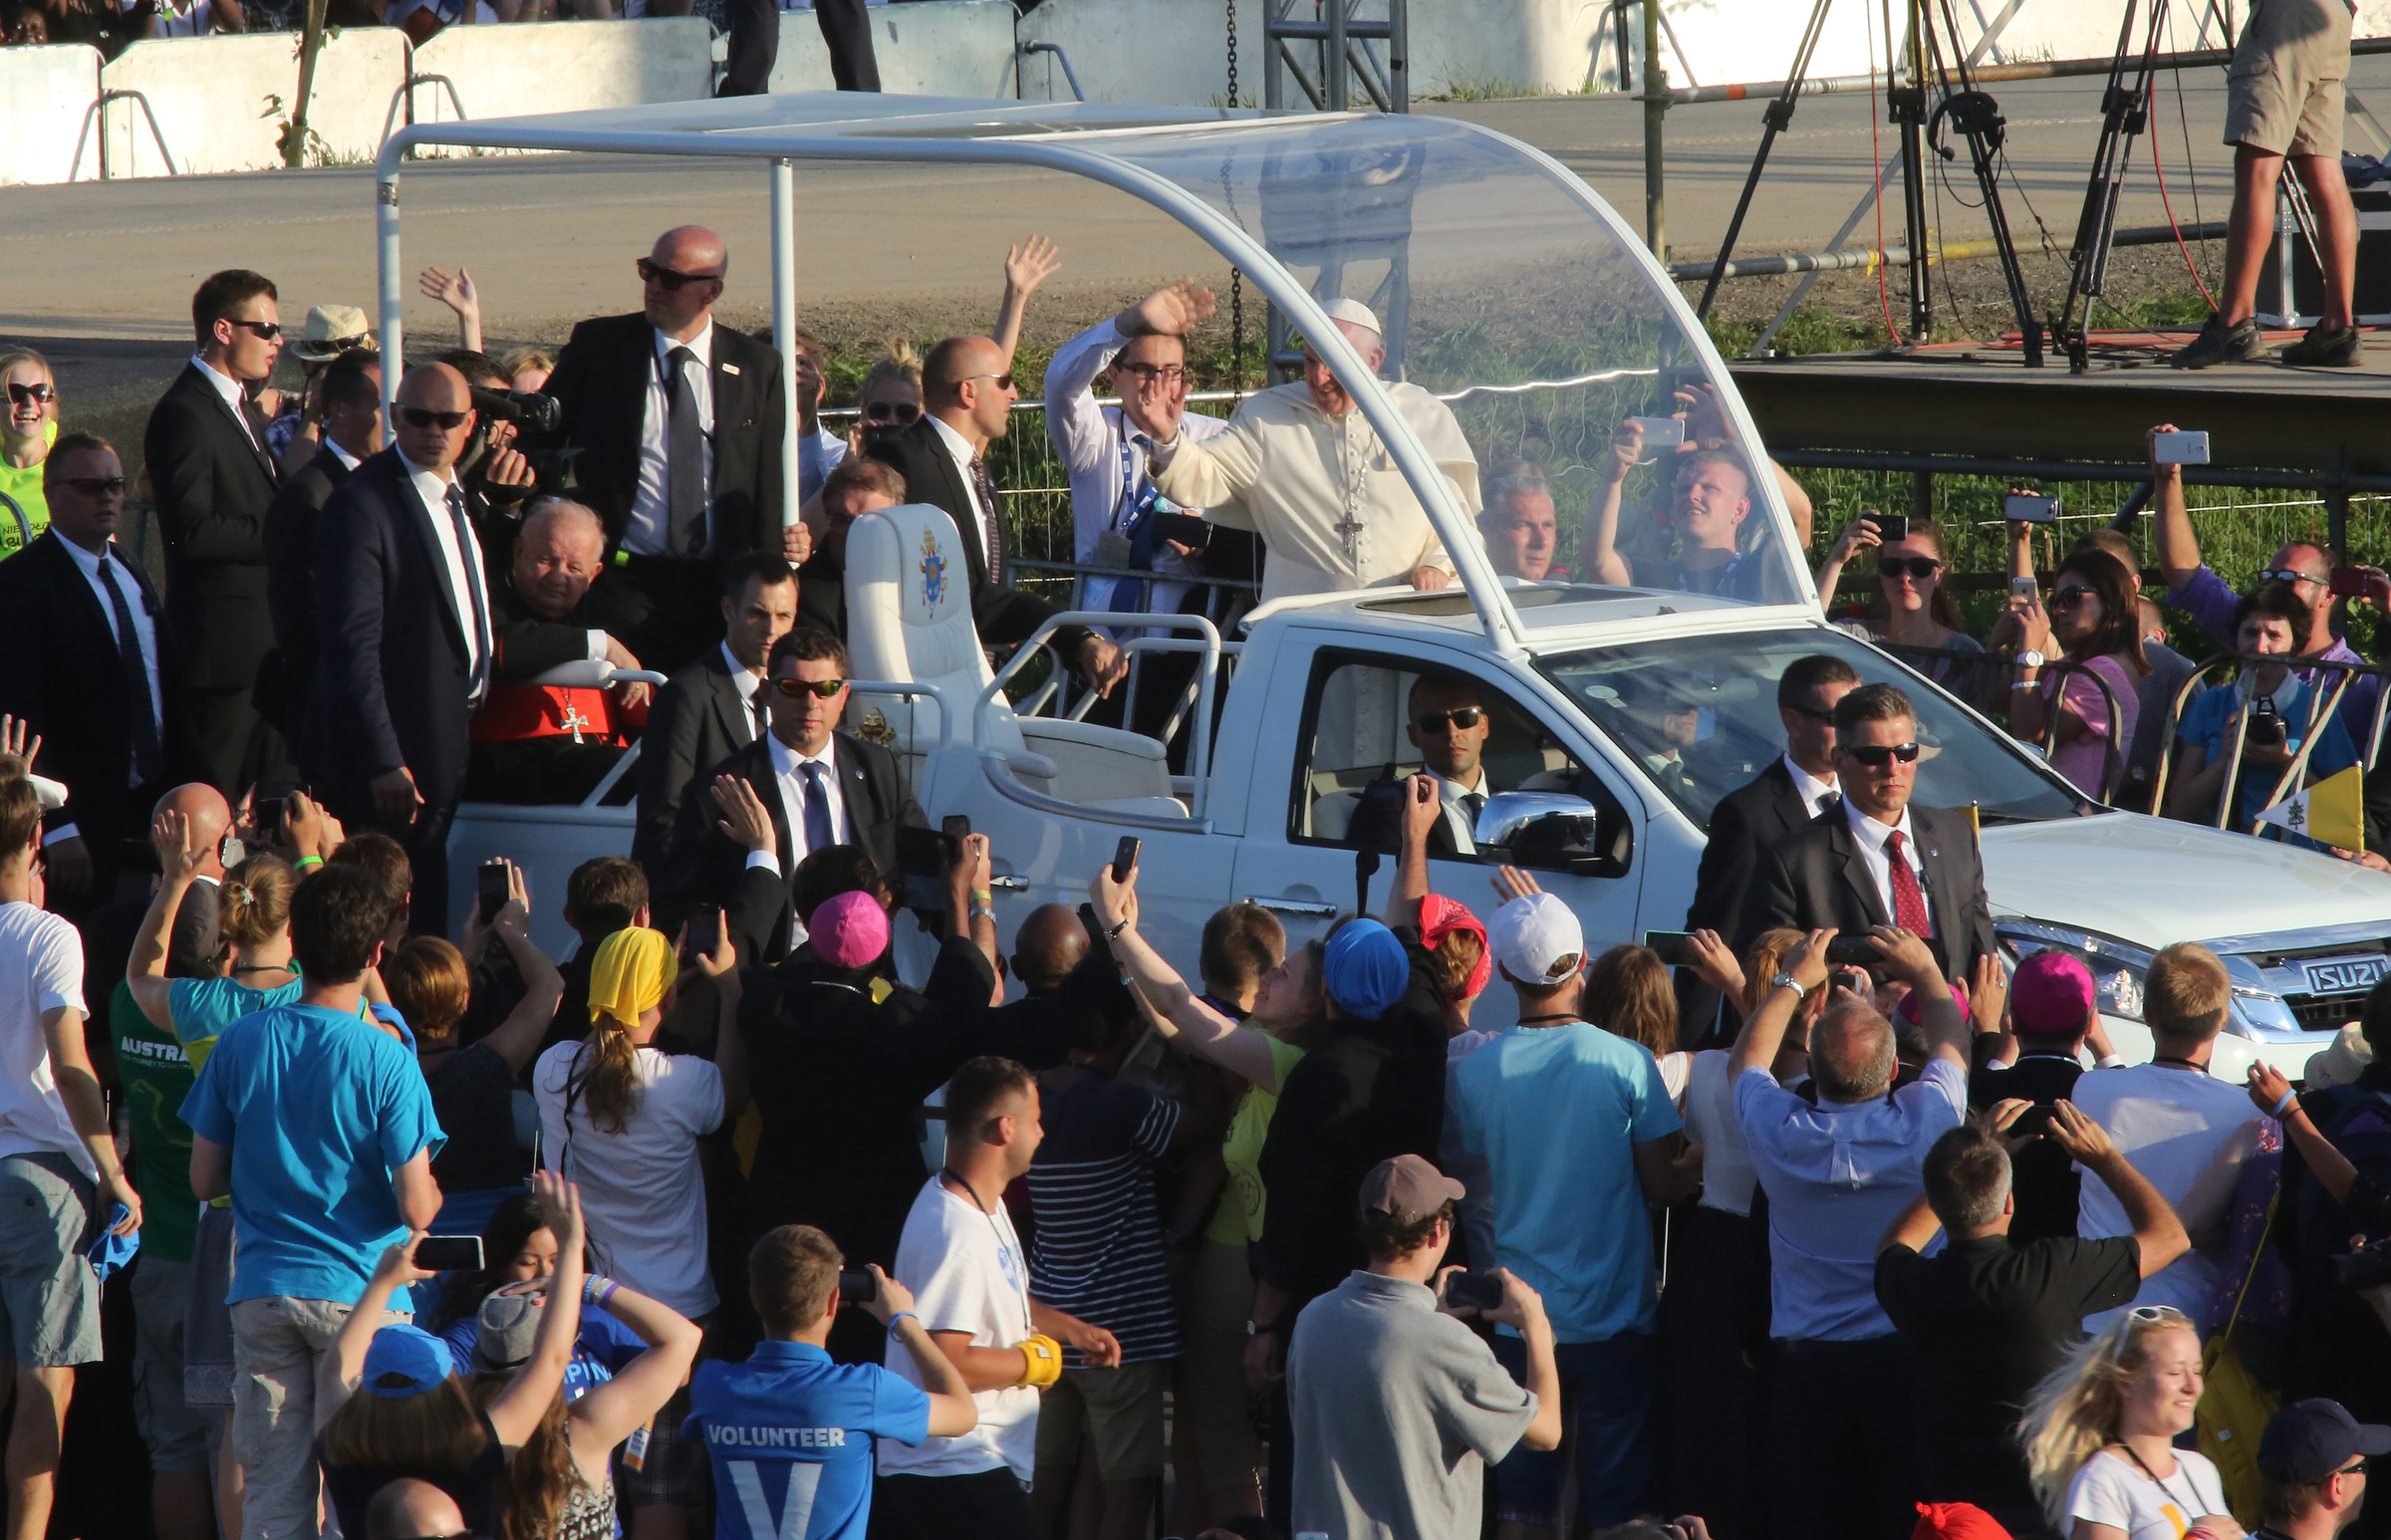 Pope Francis arrives